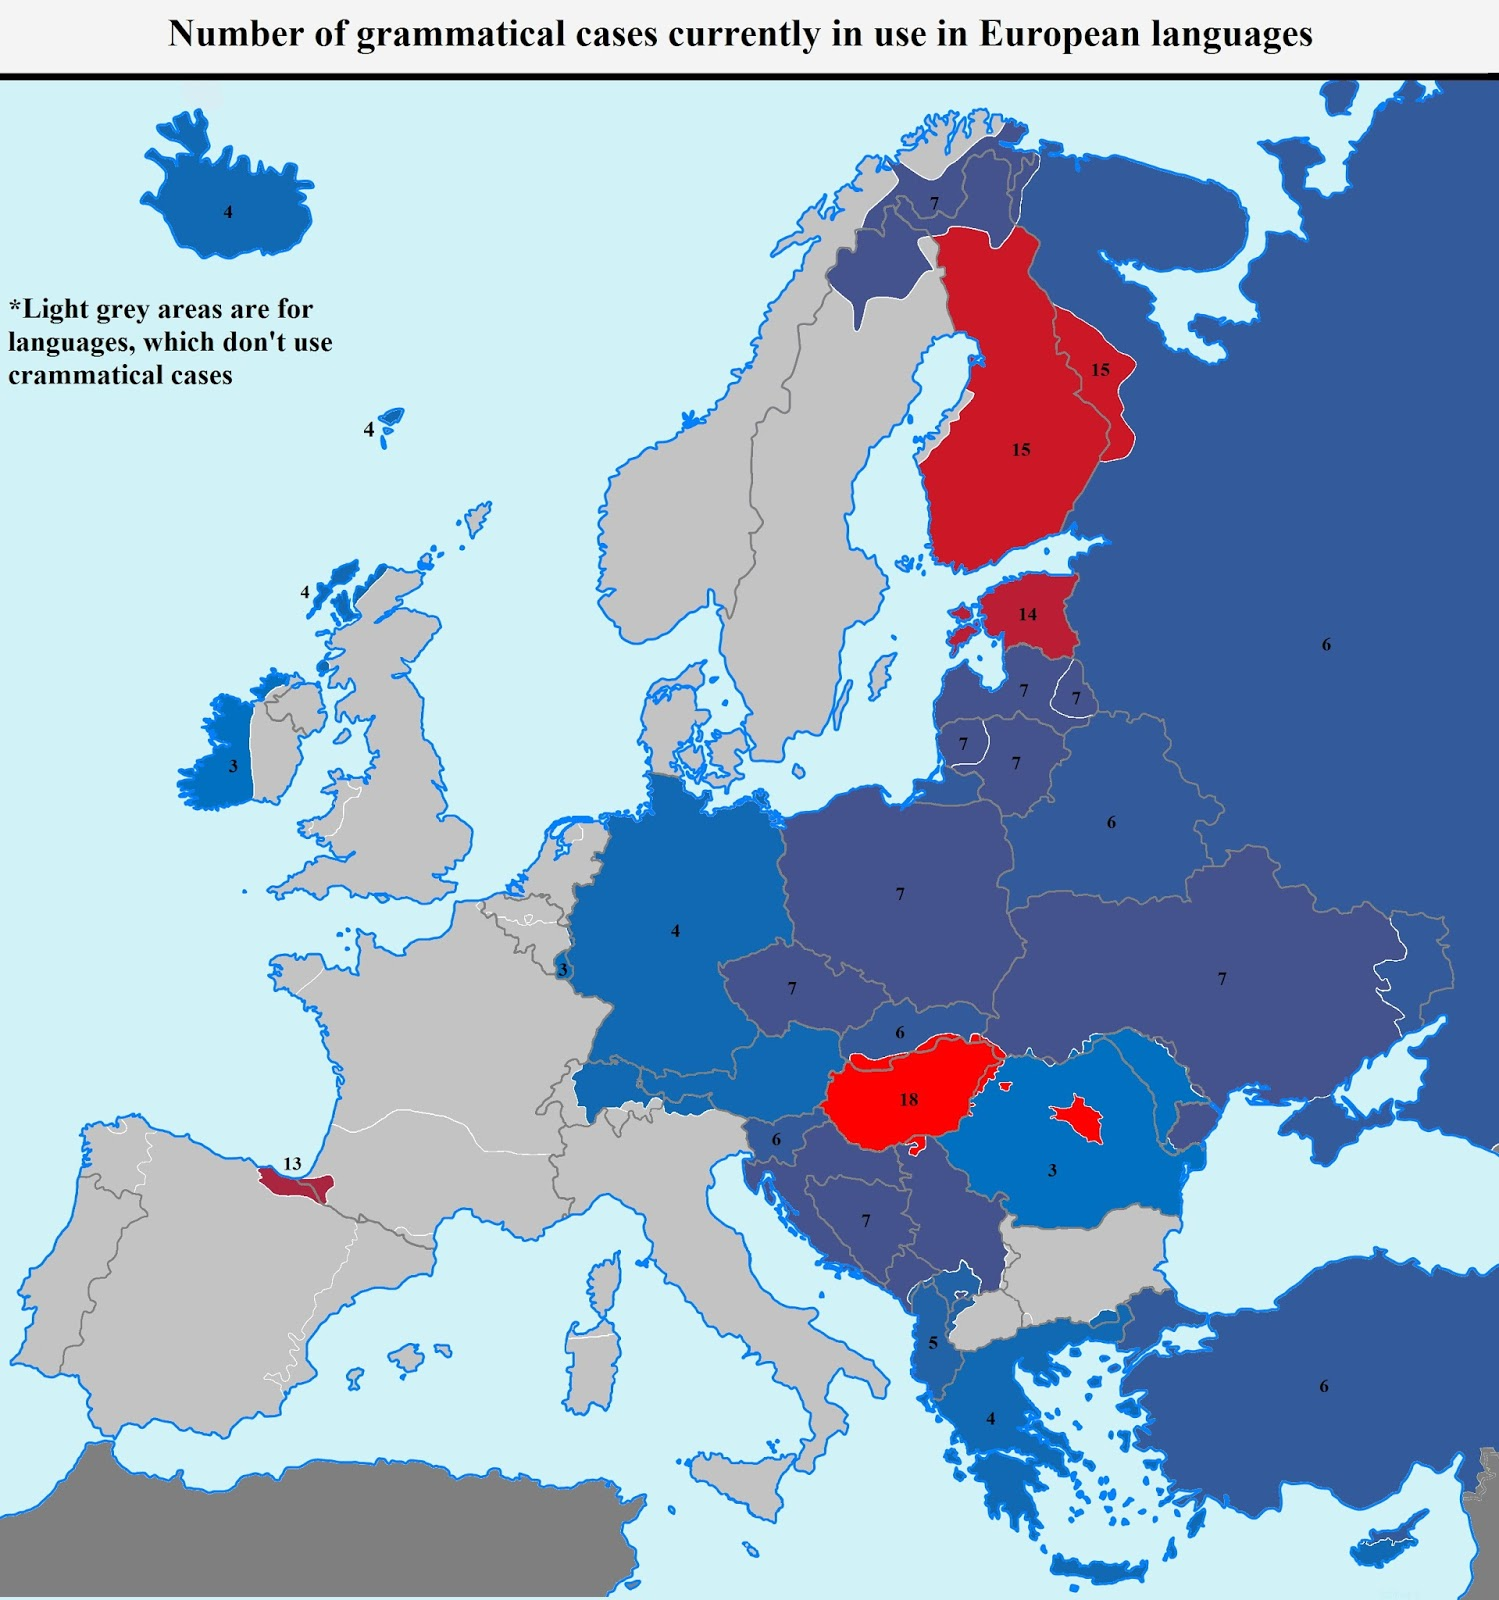 Number of grammatical cases currently in use in European languages